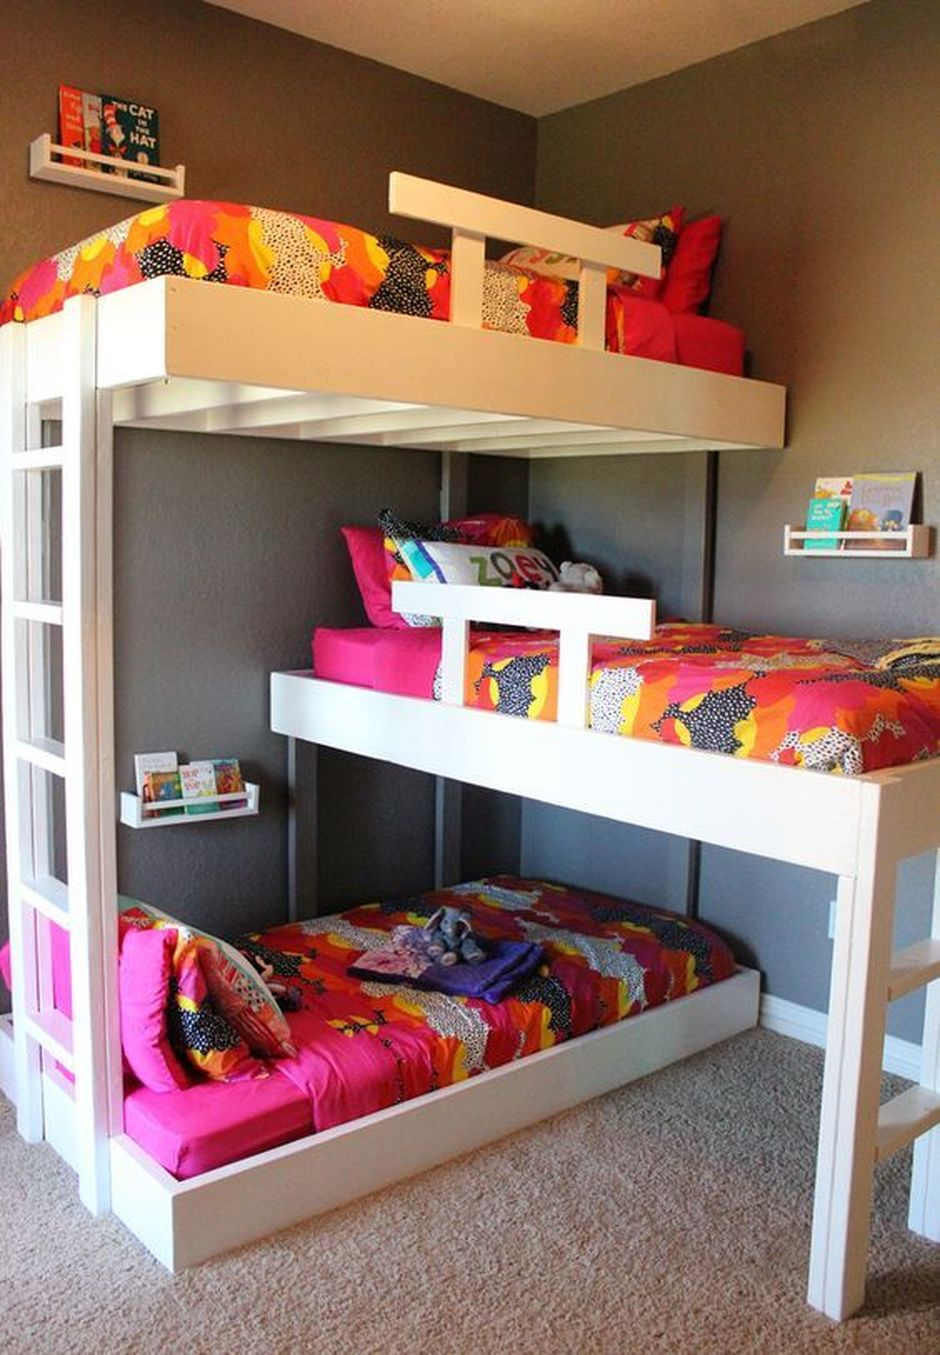 Picture of: Cool Loft Bed Design Ideas For Small Room 33 Rockindeco